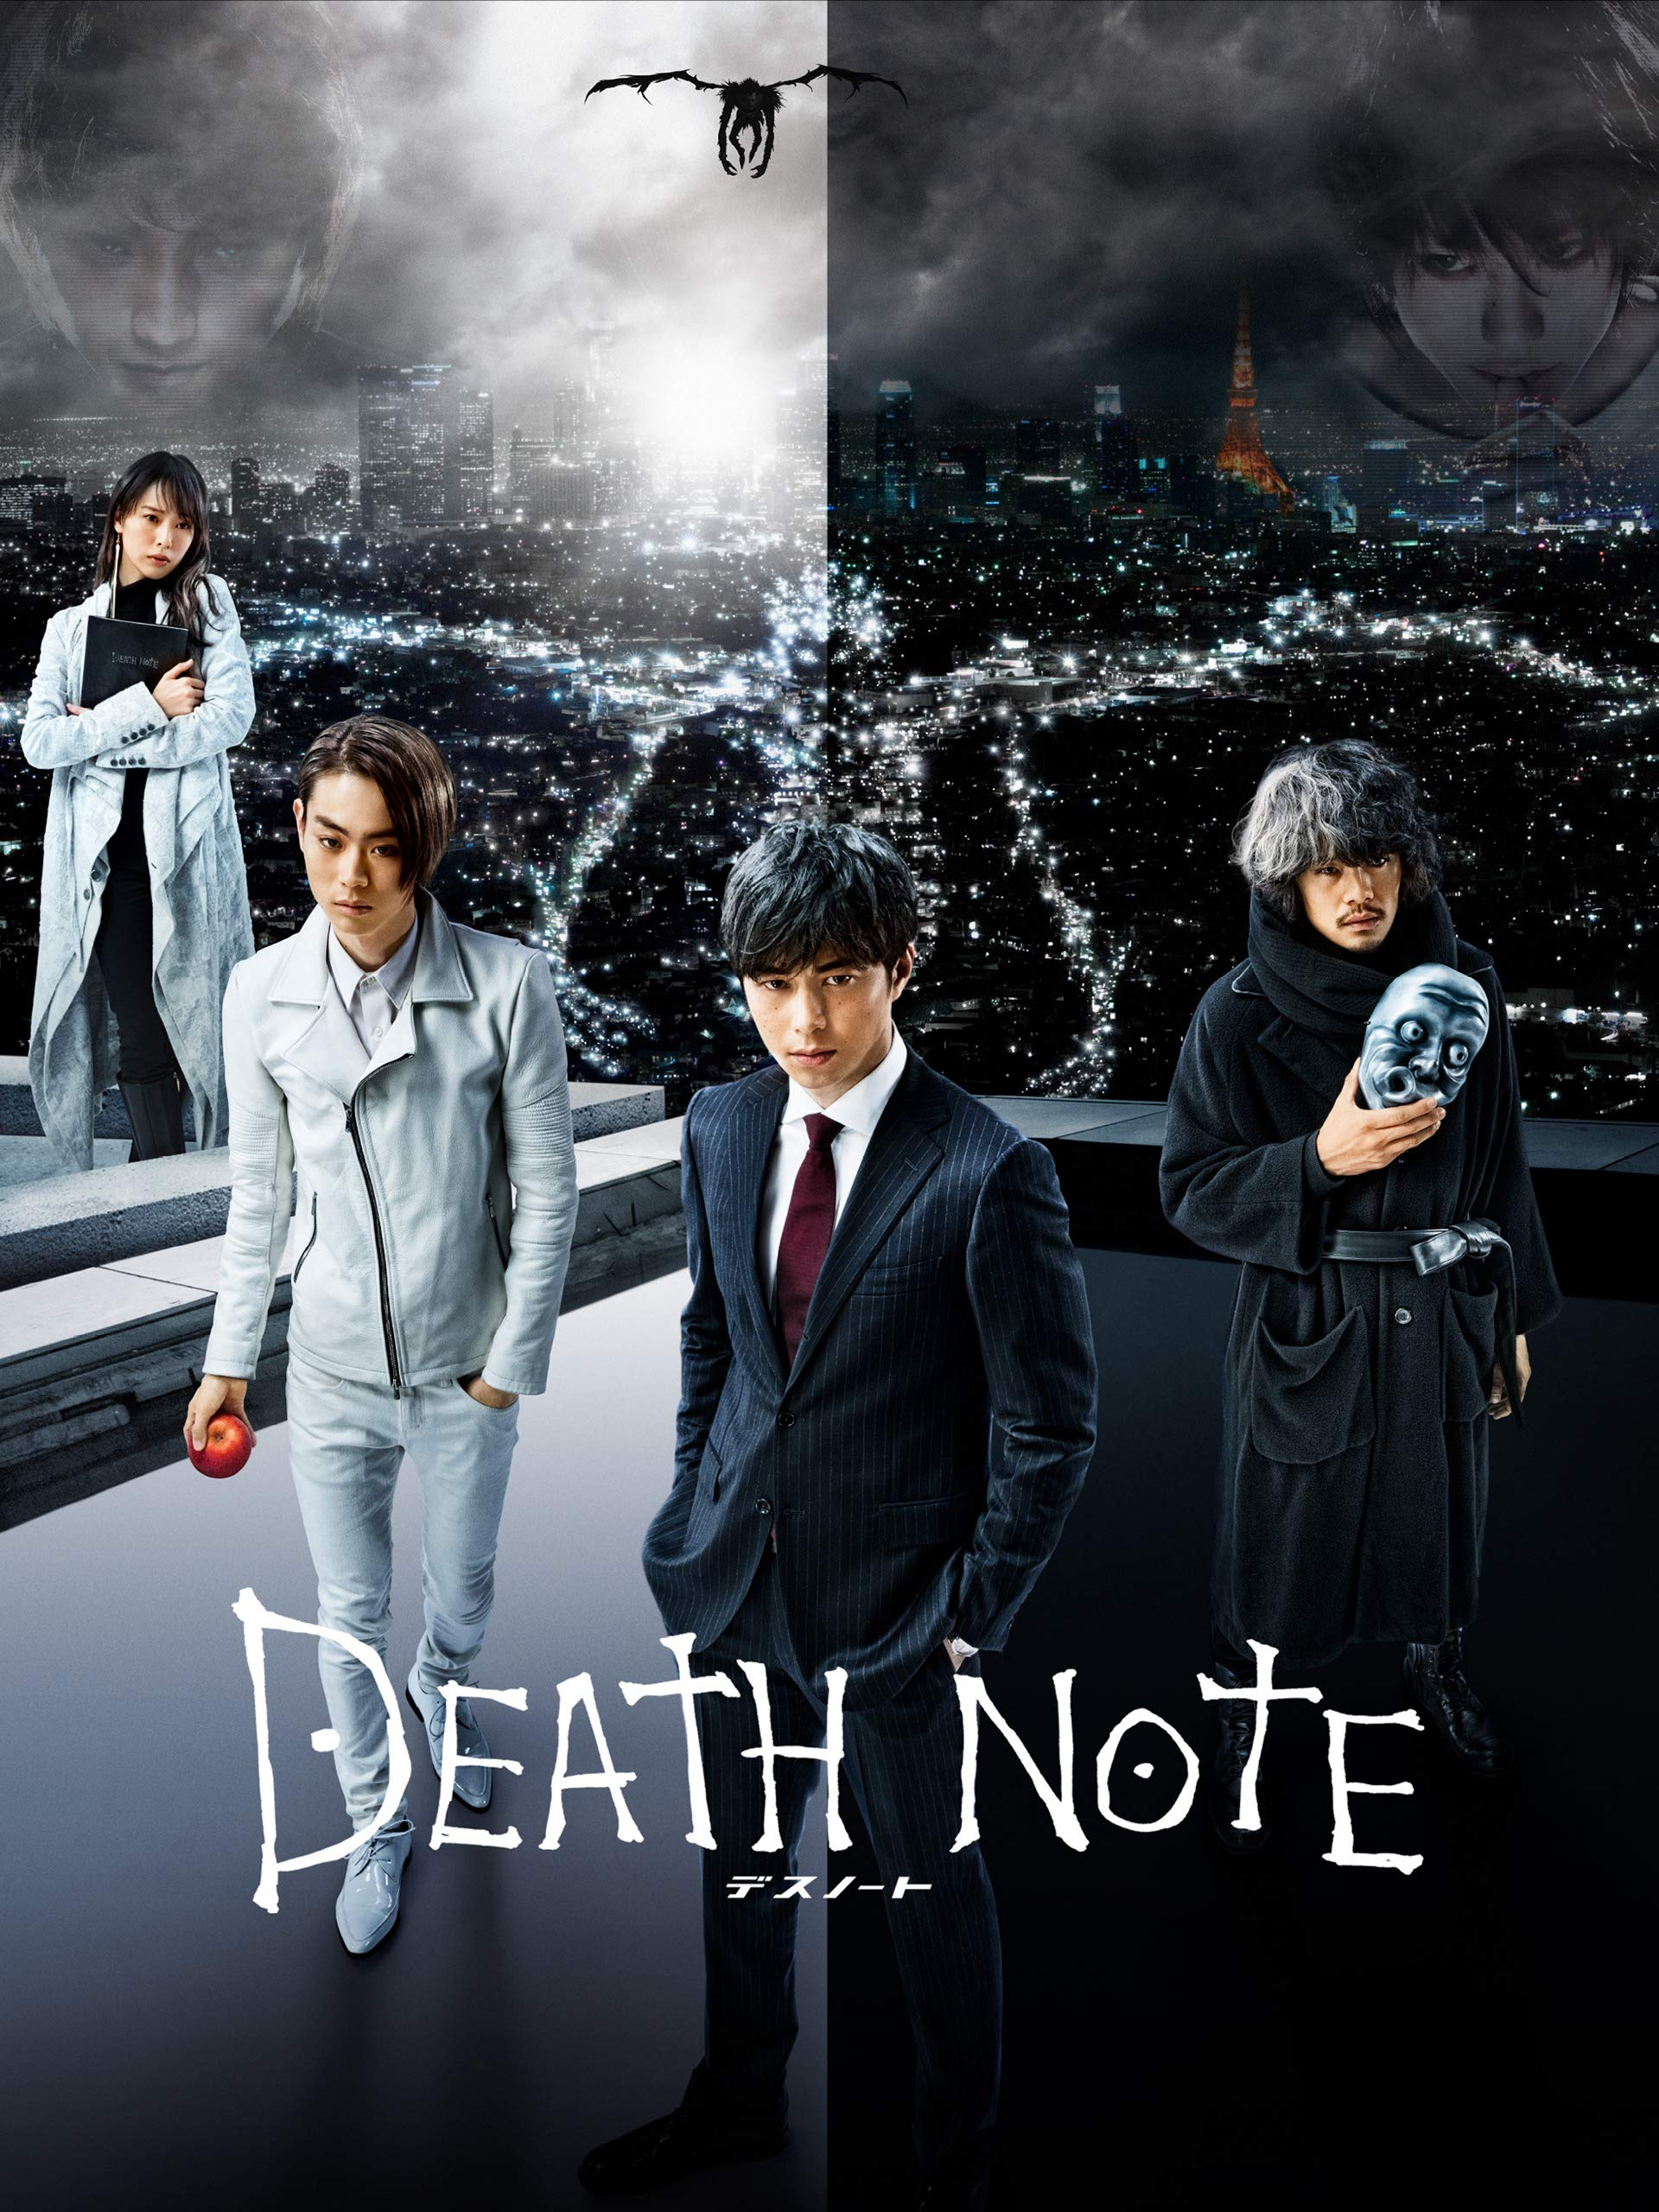 Watch Death Note Original Japanese Version Prime Video